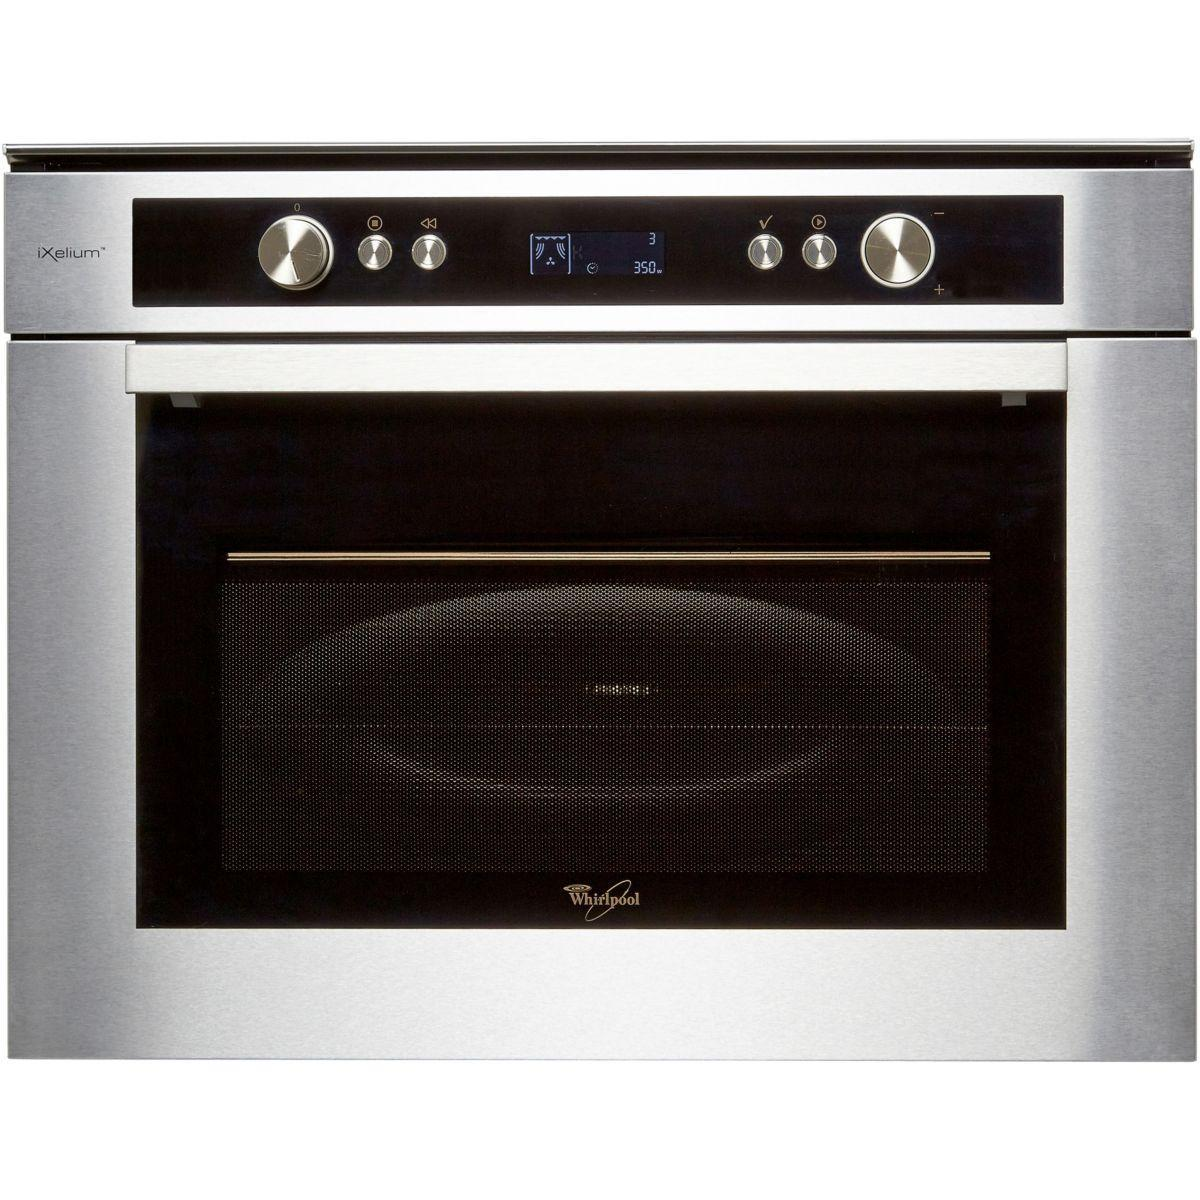 micro-ondes grill + four whirlpool amw835ixl reconditionné | back market